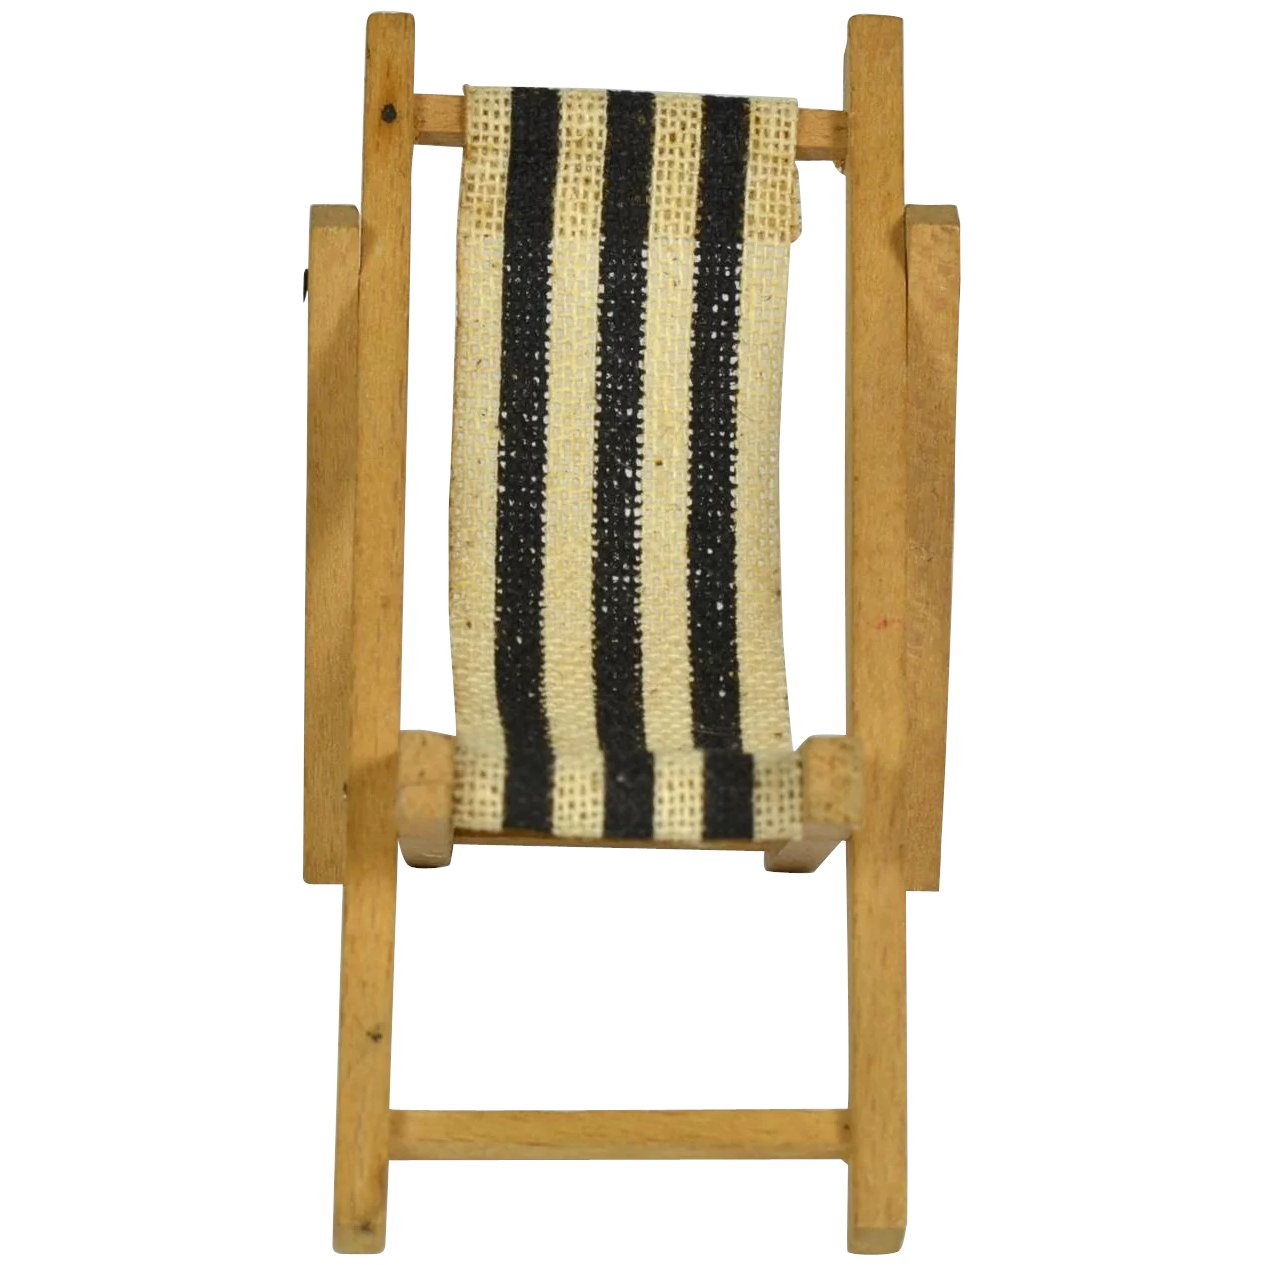 German Wooden Folding Lawn Chair 3 Tall C Rabel Art And Antiques Ruby Lane